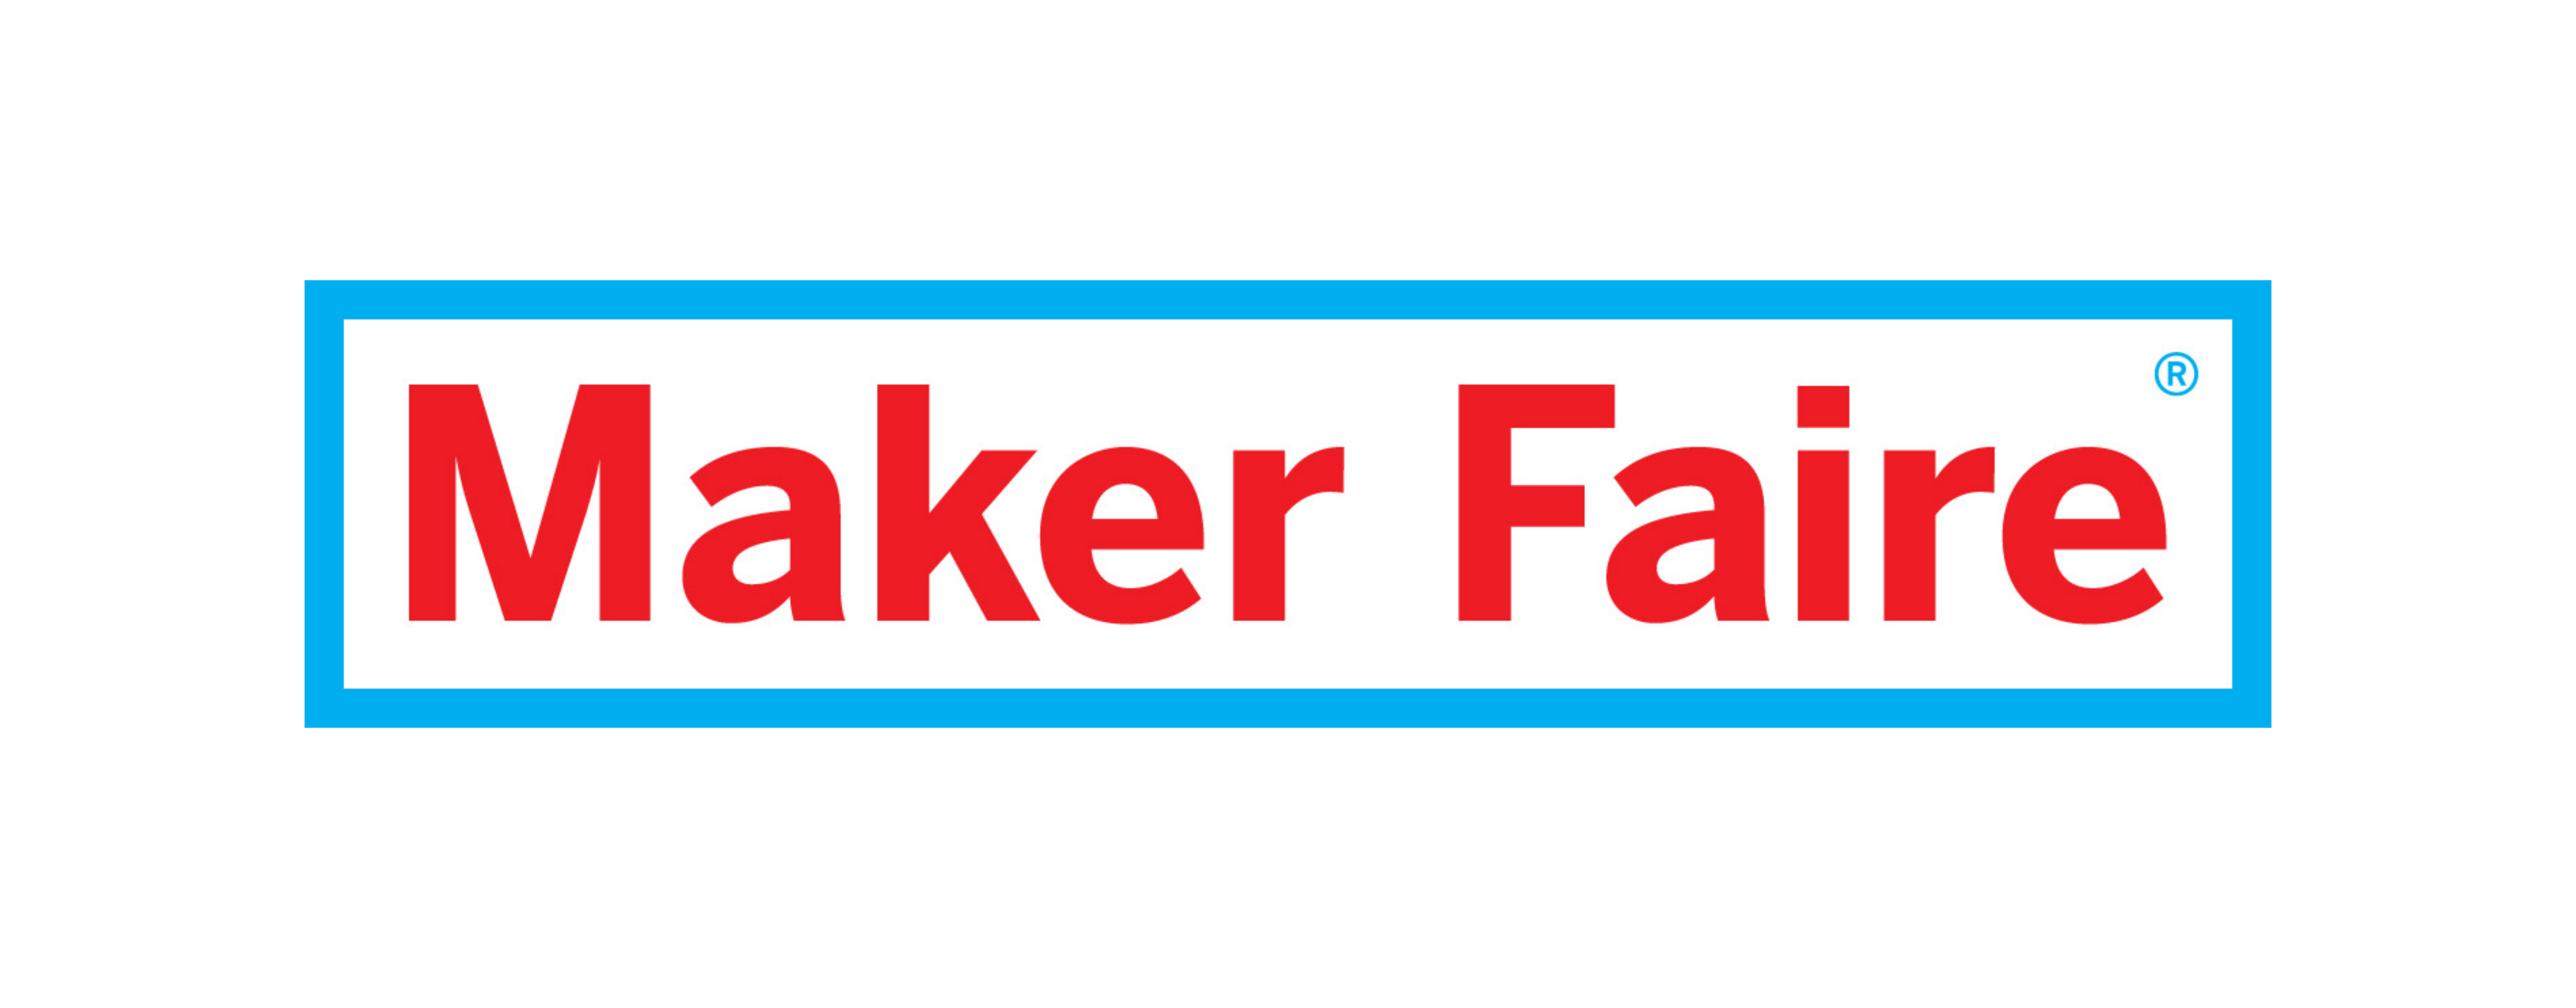 makerfair